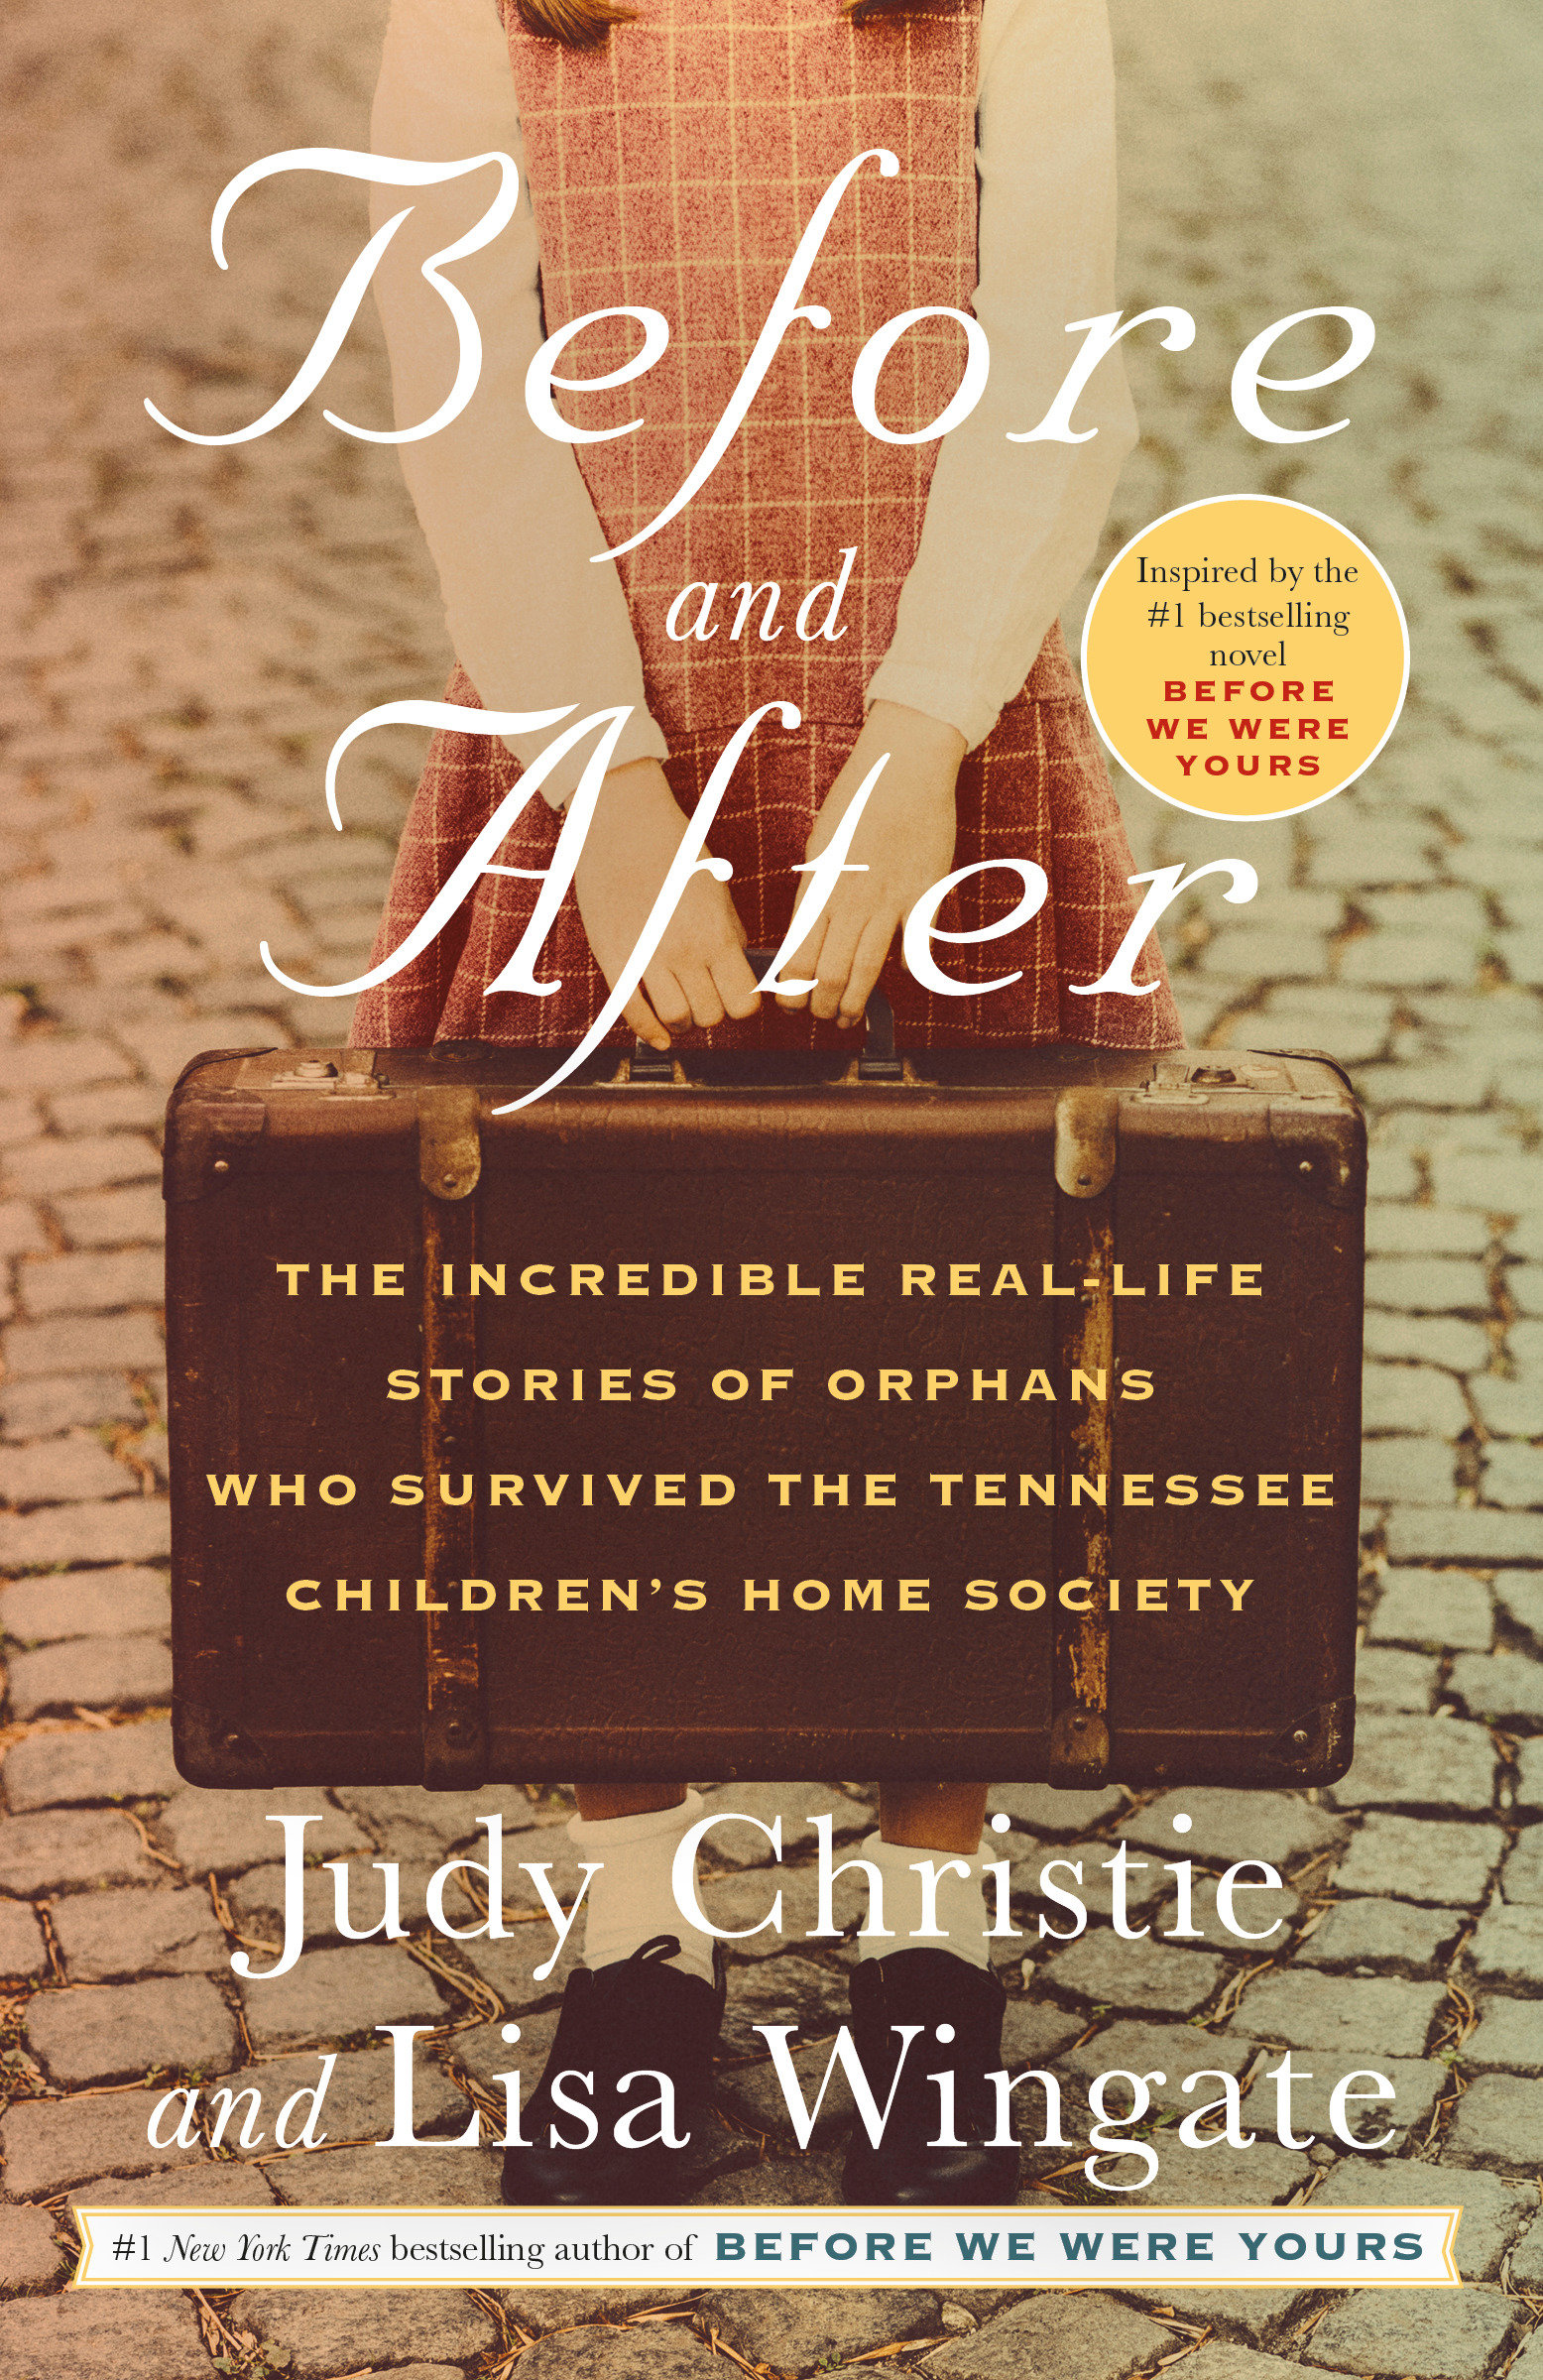 Before and After The Incredible Real-Life Stories of Orphans Who Survived the Tennessee Children's Home Society